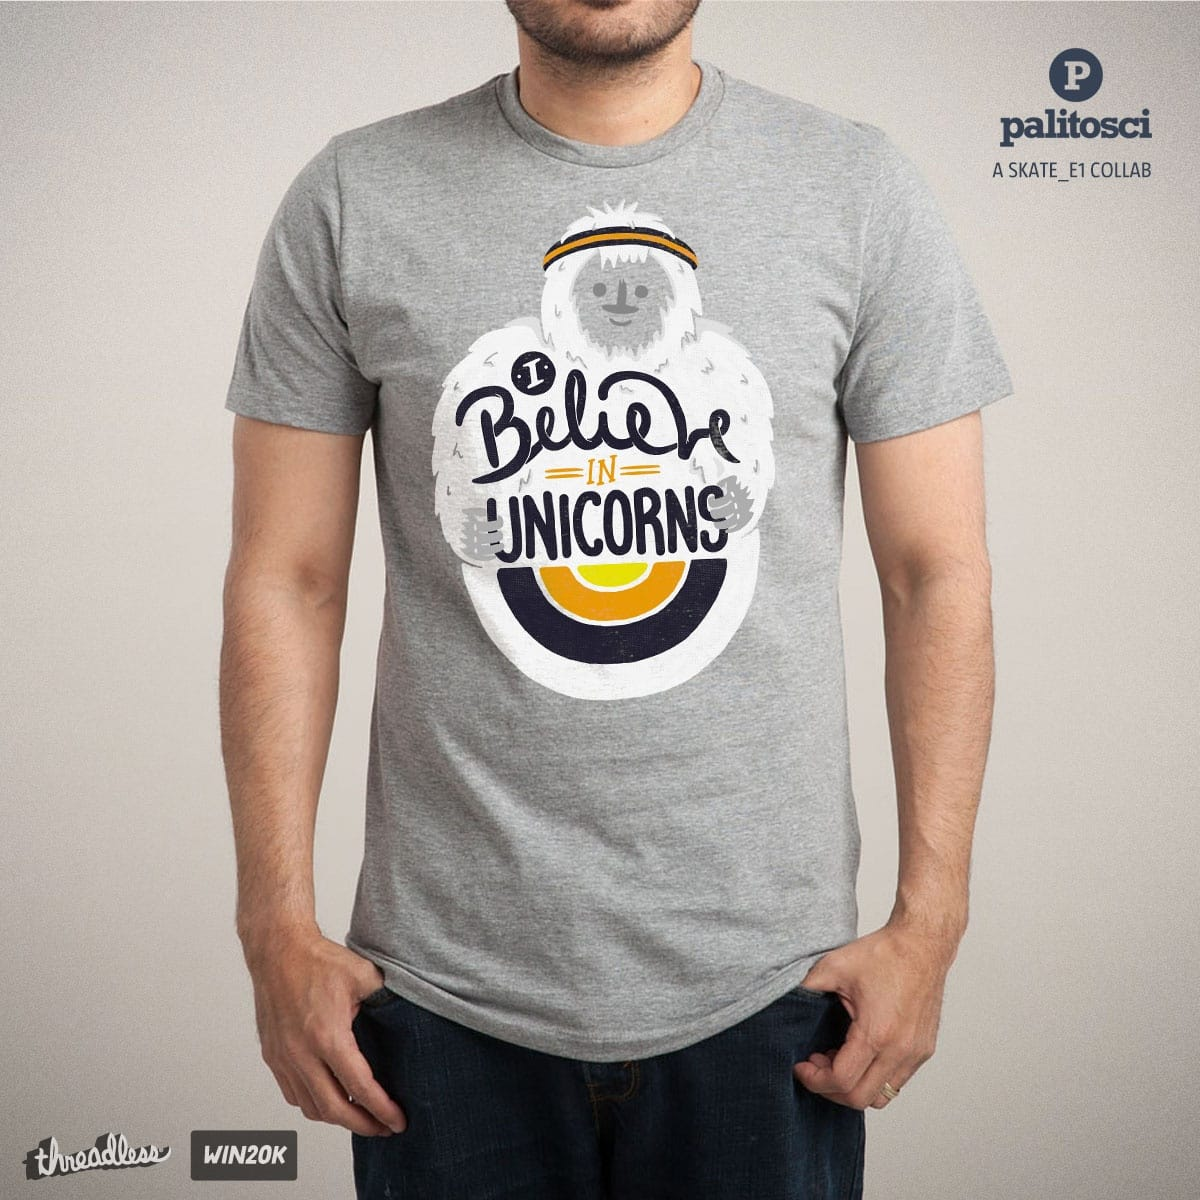 I believe in Unicorns by palitosci and Skate_e1 on Threadless